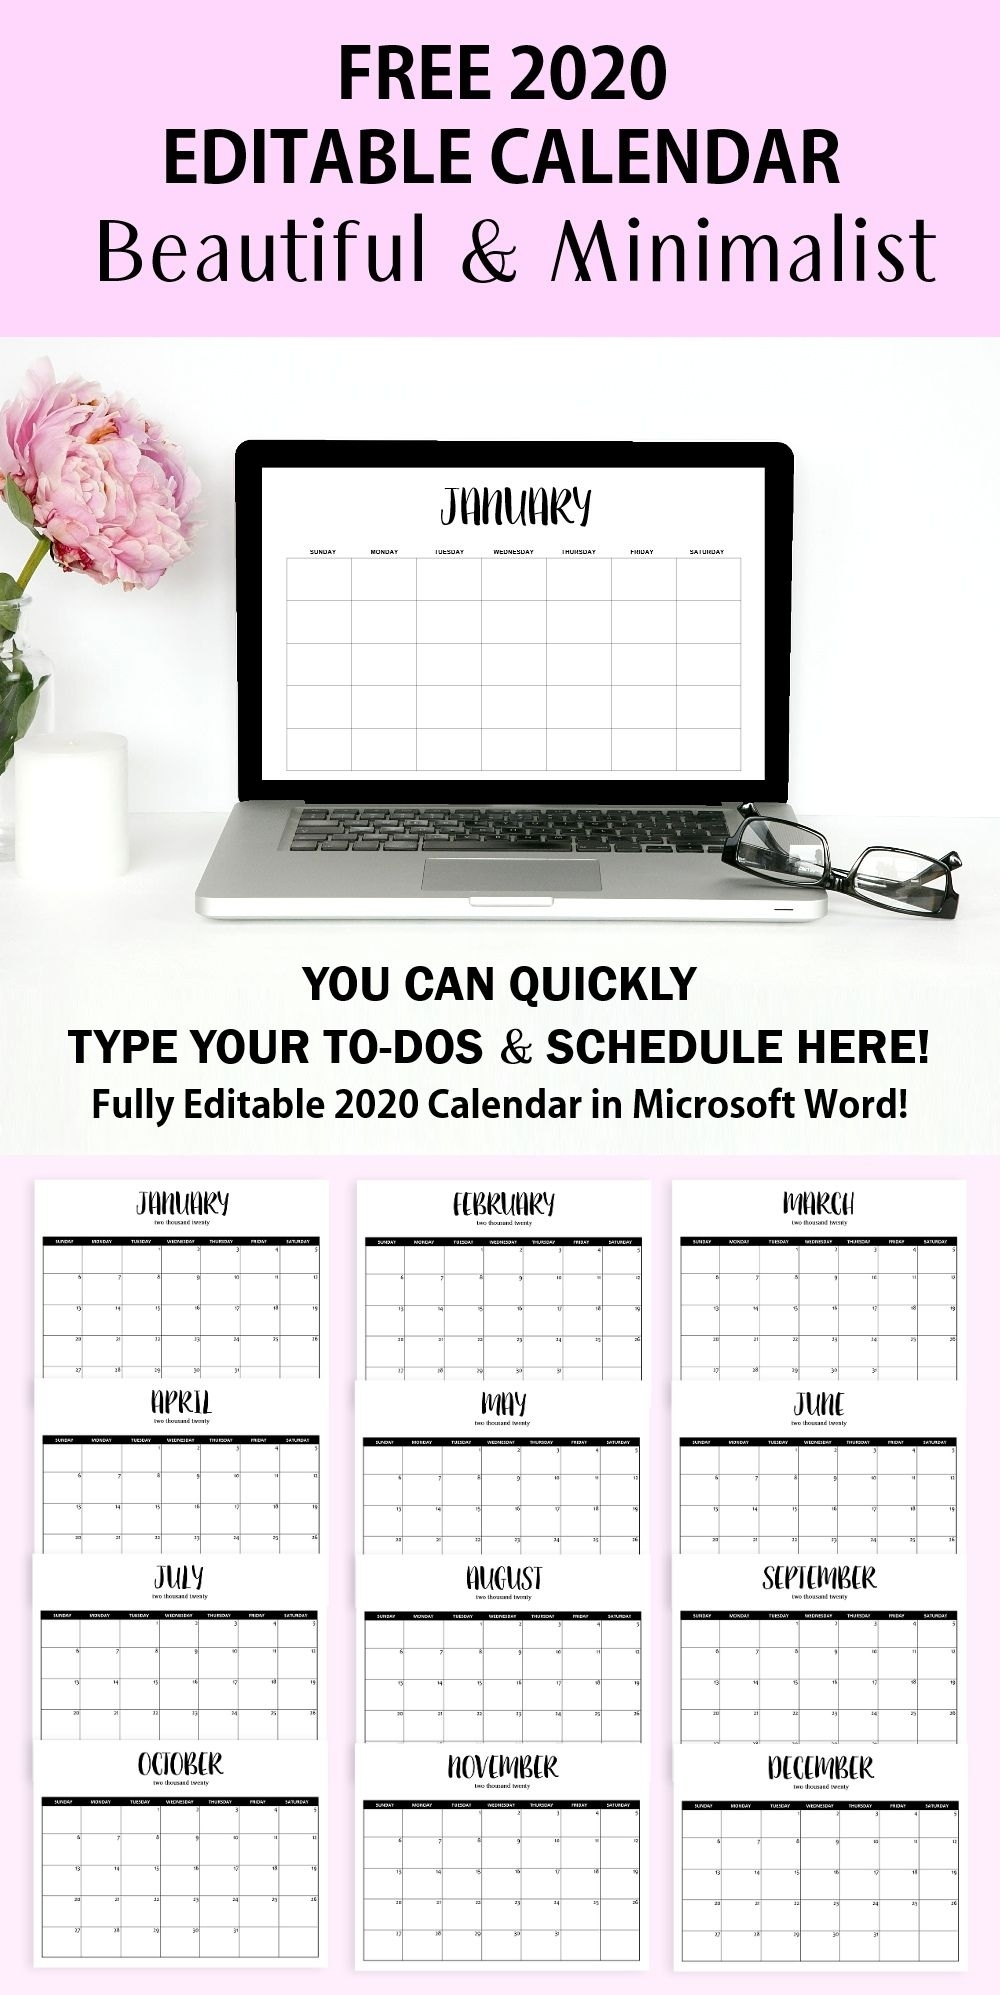 Free Fully Editable 2020 Calendar Template In Word